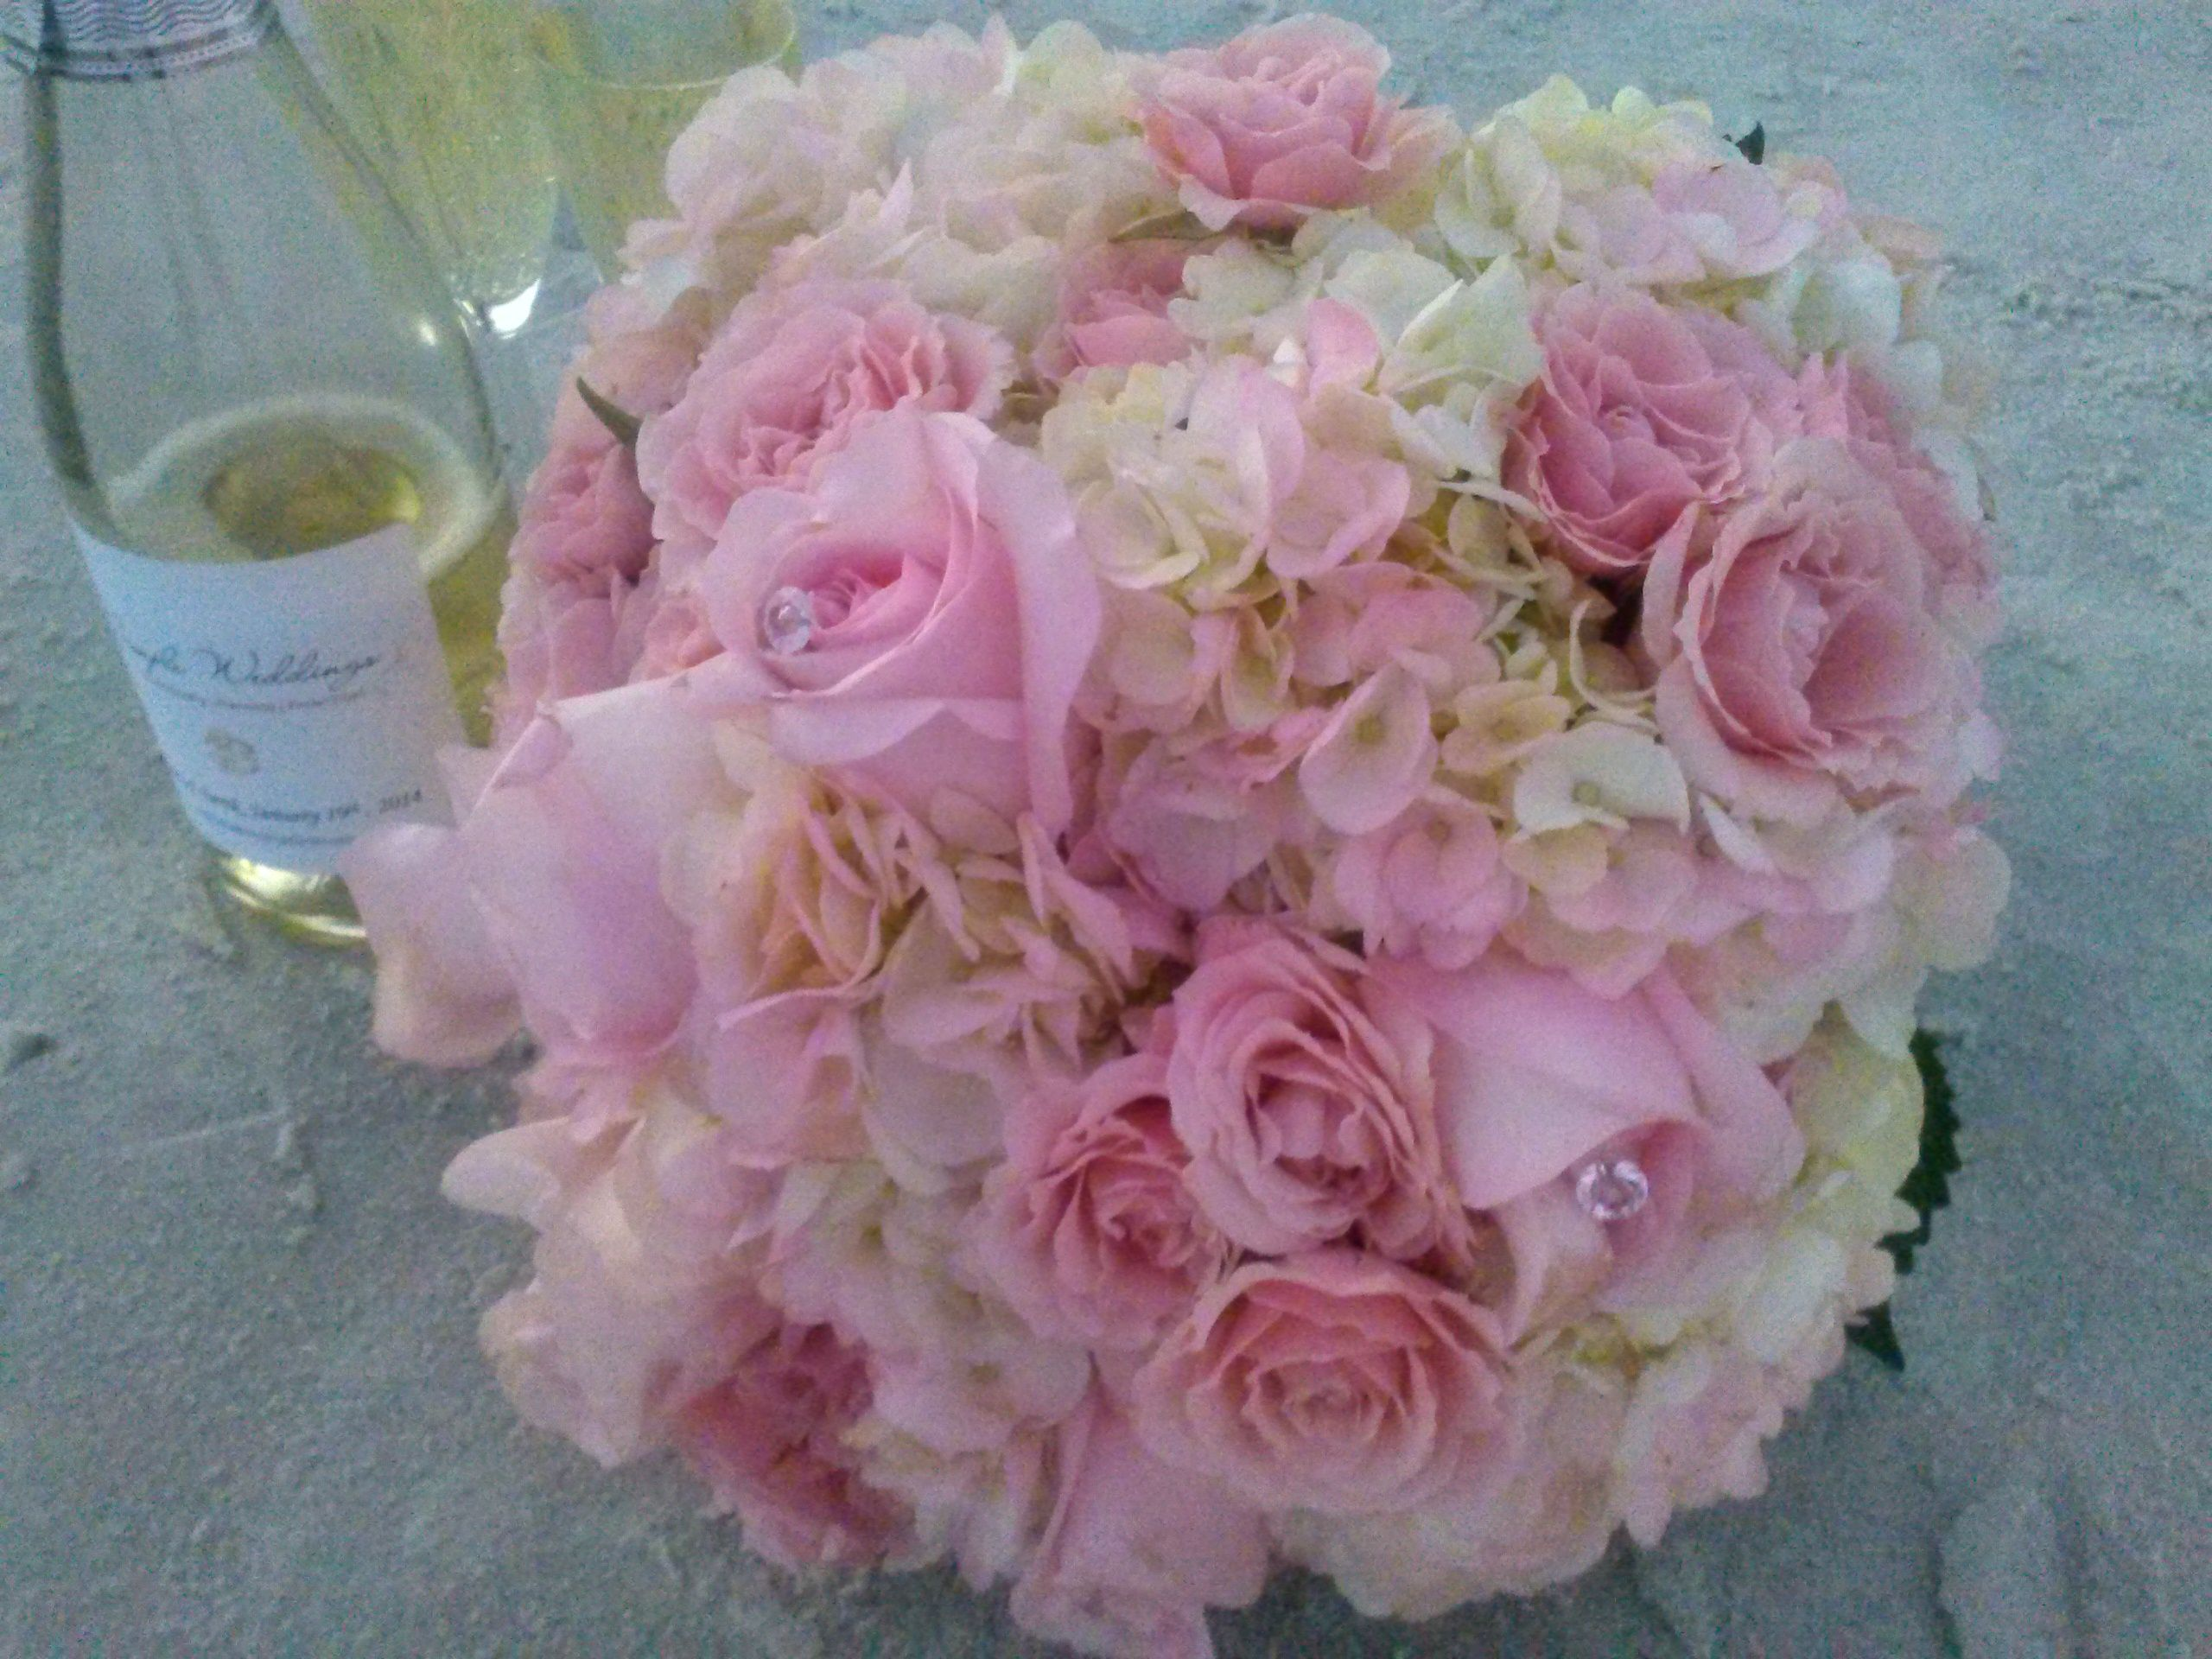 Lt Pink Hydrangea and roses.  Soft and romantic